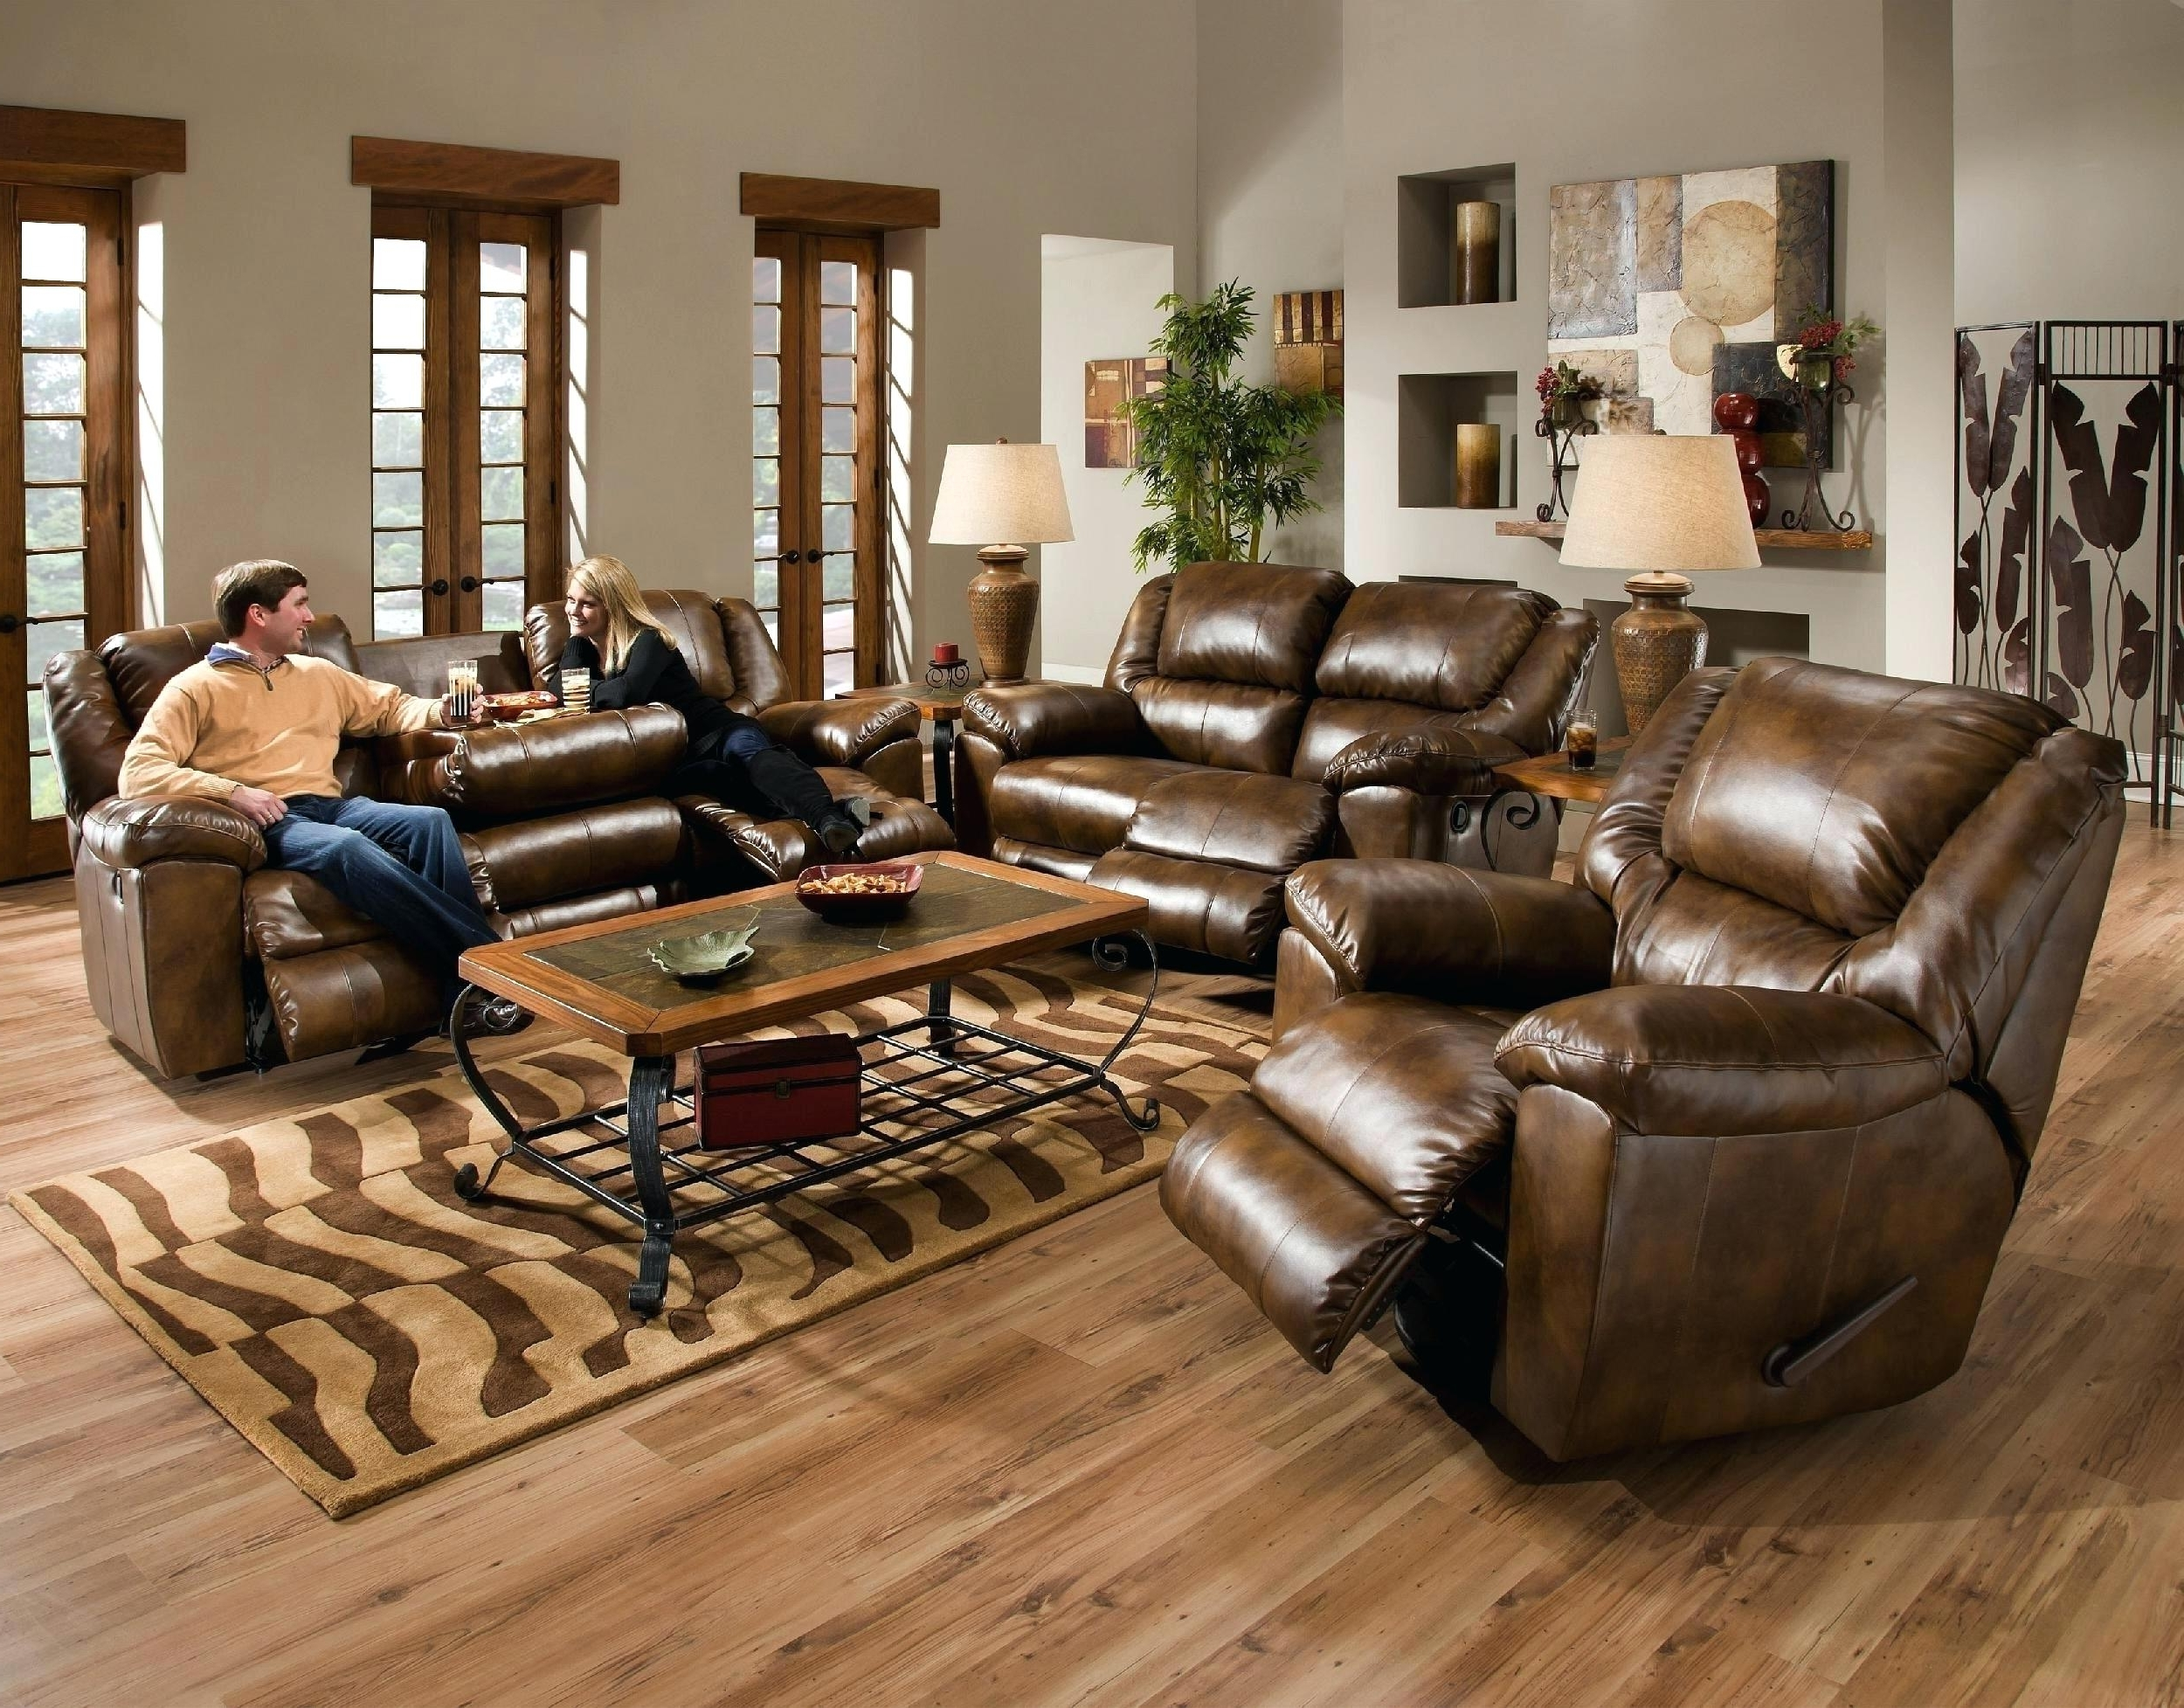 Furniture : Sectional Sofa 120 Sectional Couch Guelph Recliner 3 Regarding 2018 Guelph Sectional Sofas (View 15 of 20)